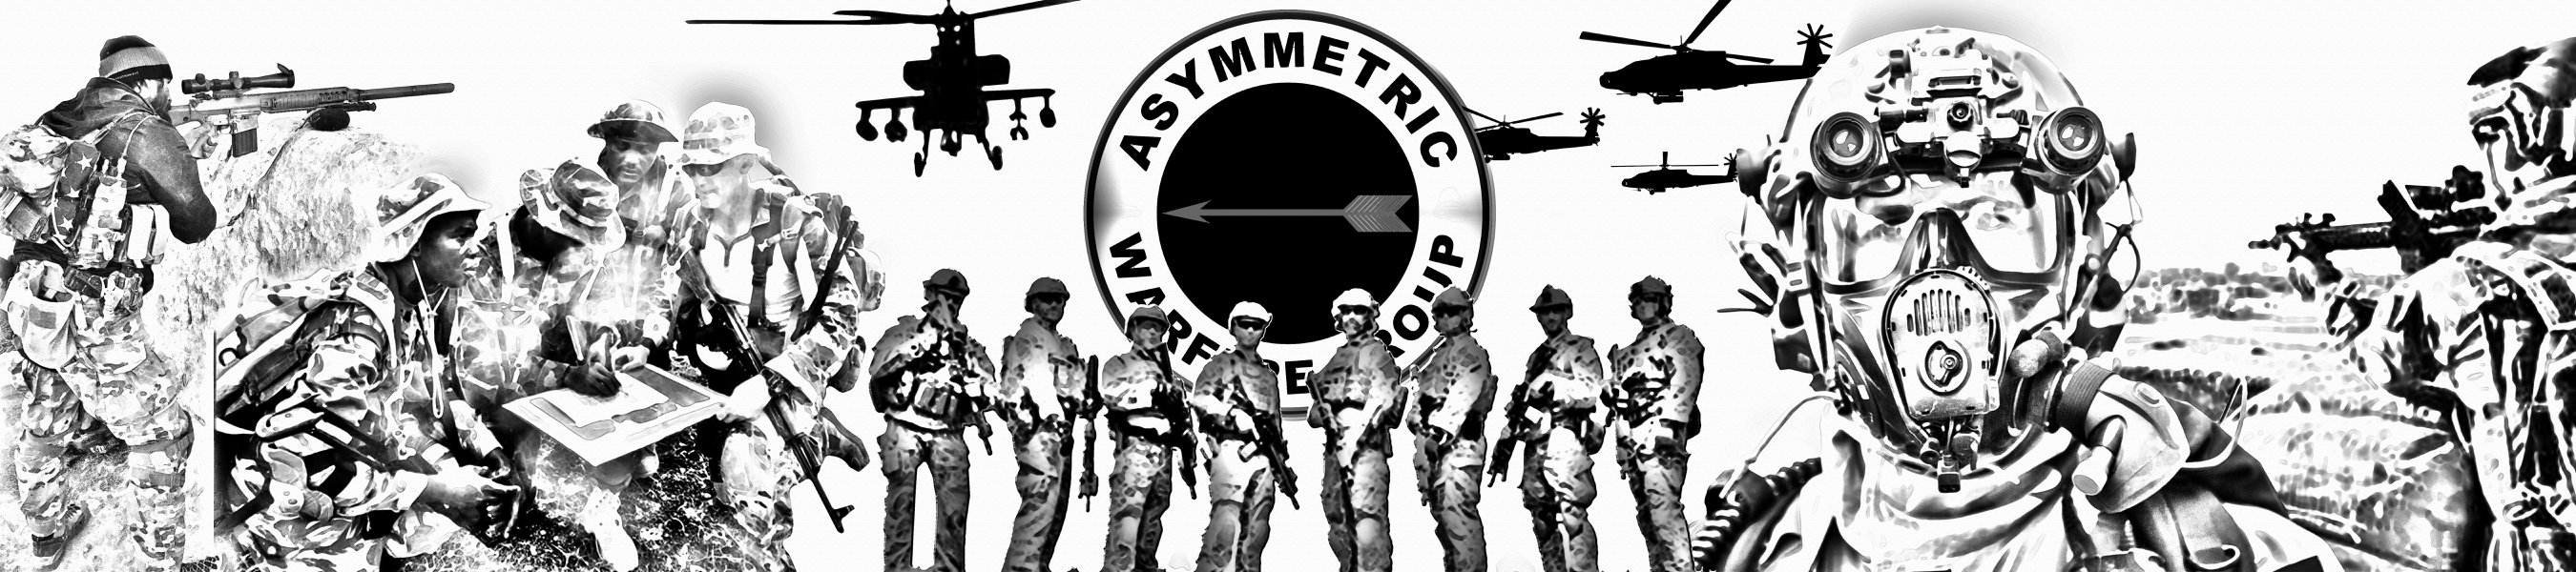 Asymmetric Warfare Group > About Us > Mission, Core Functions ...